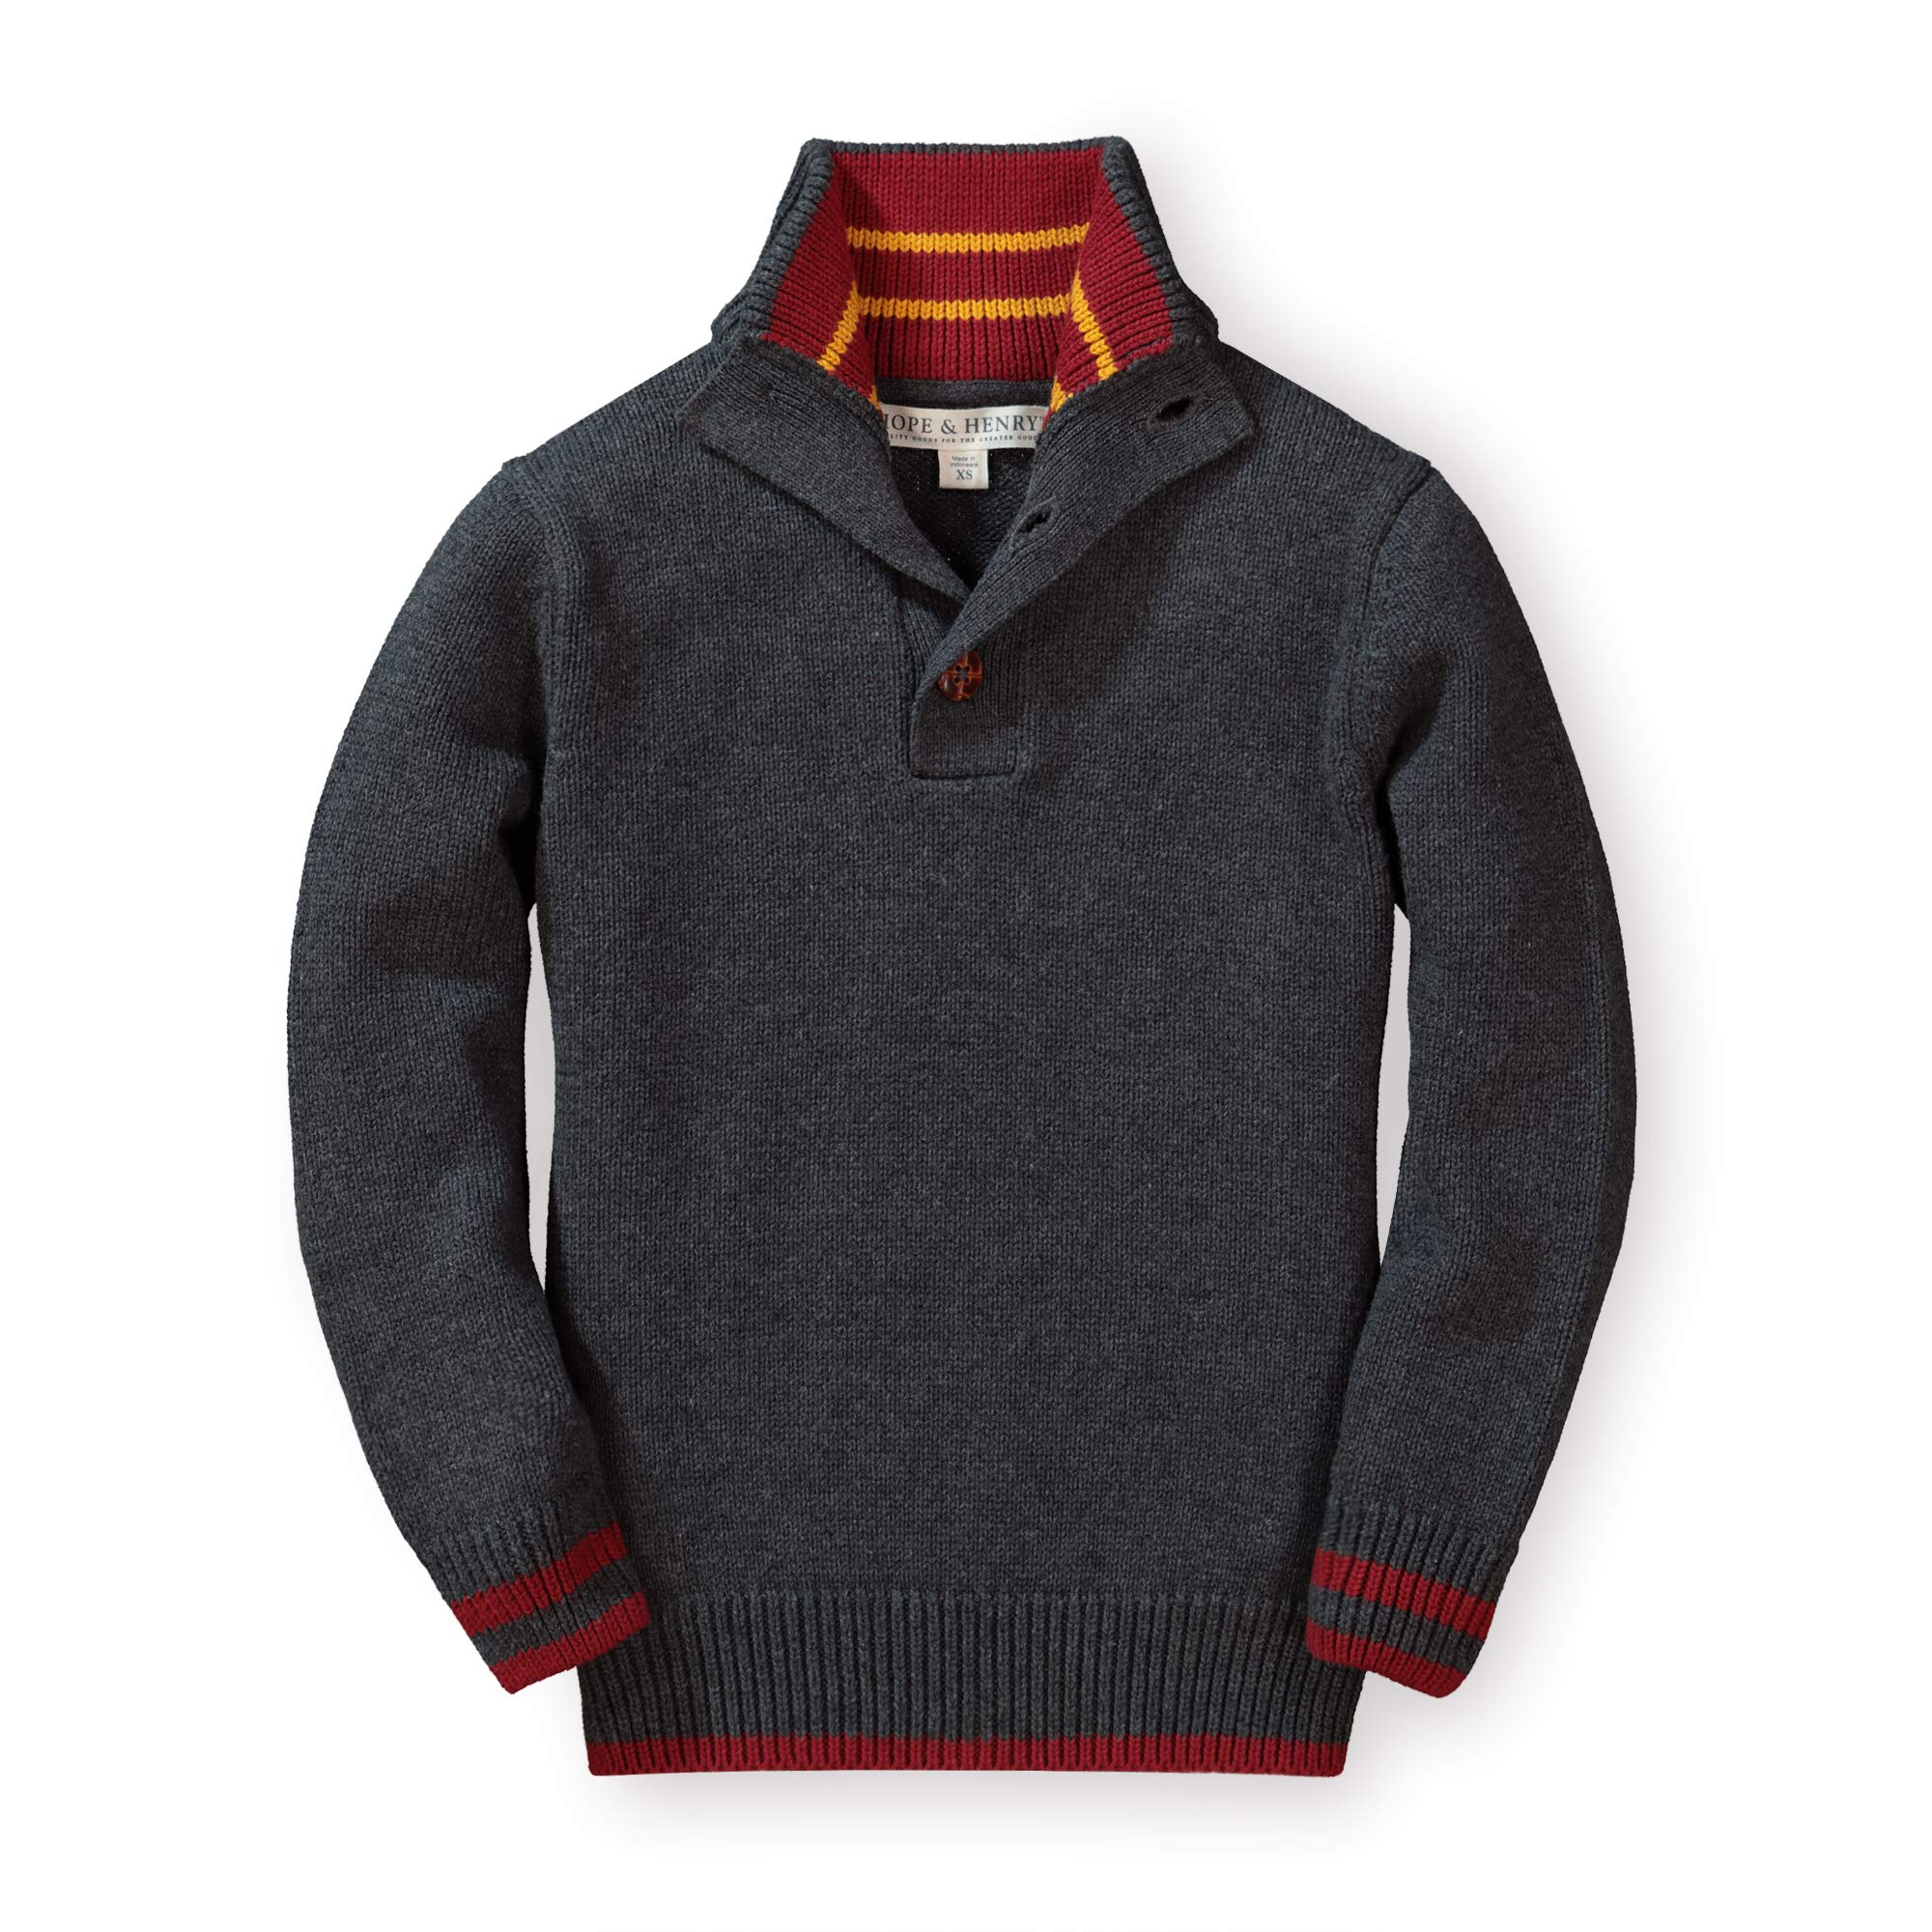 Hope & Henry Boys' Dark Heather Gray Mock Neck Sweater